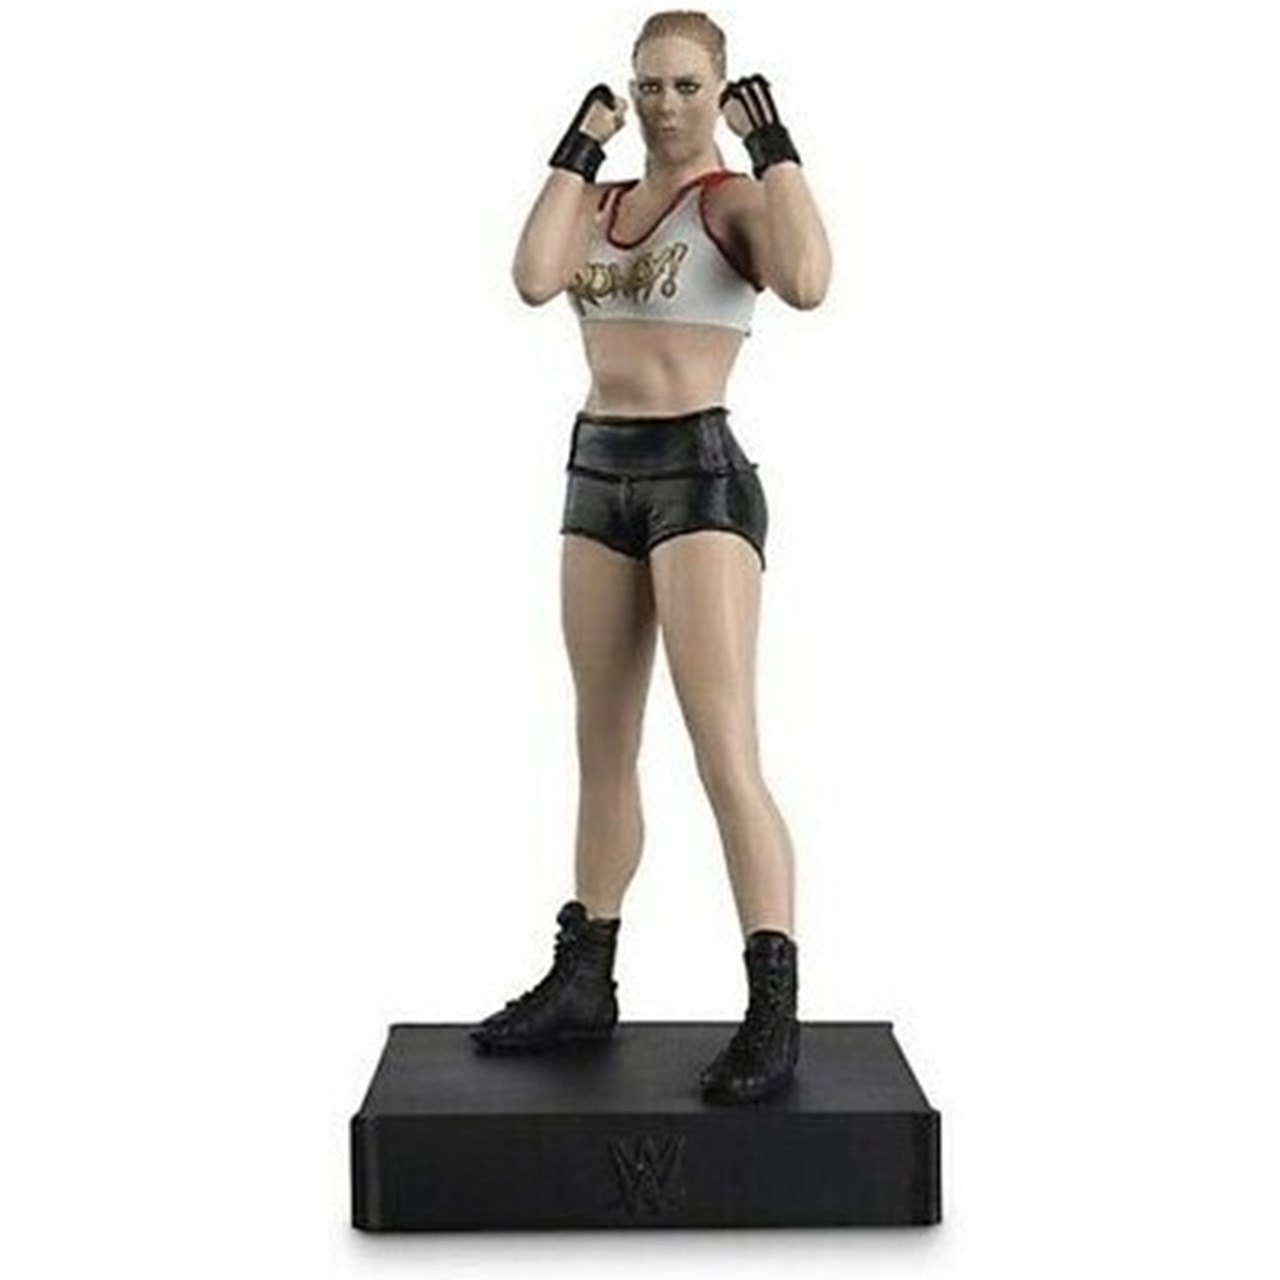 Ronda Rousey: WWE Championship Figurine: Hero Collector - 1